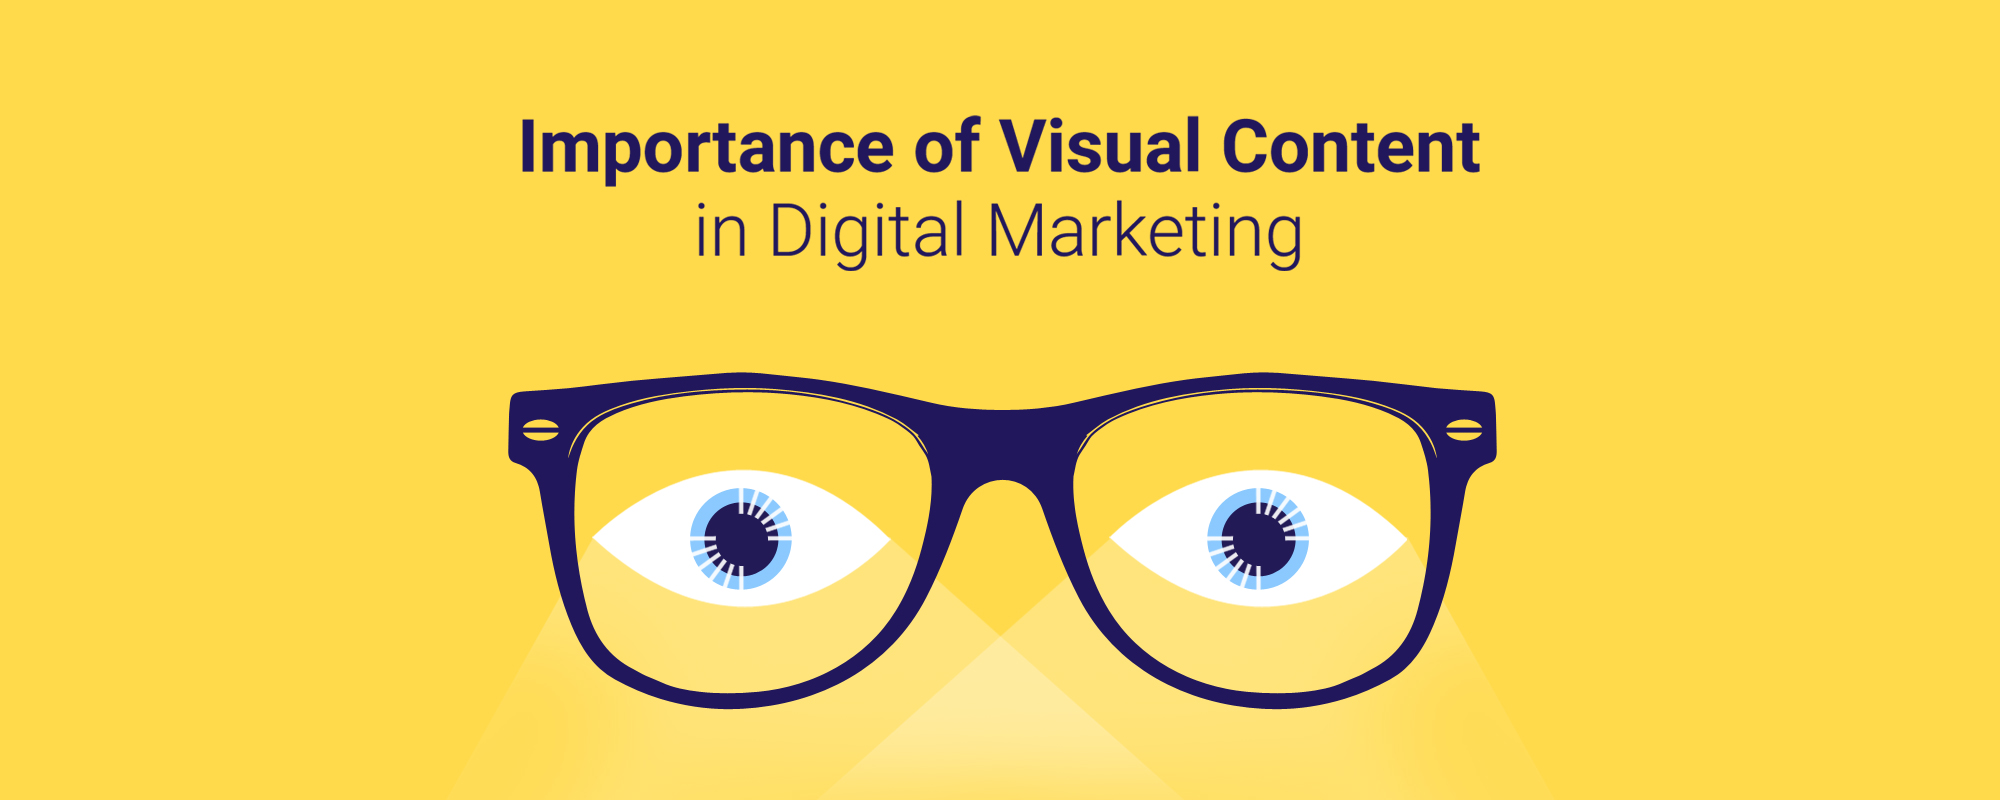 What Makes Visual Content So Critical in a Digital Marketing Campaign?